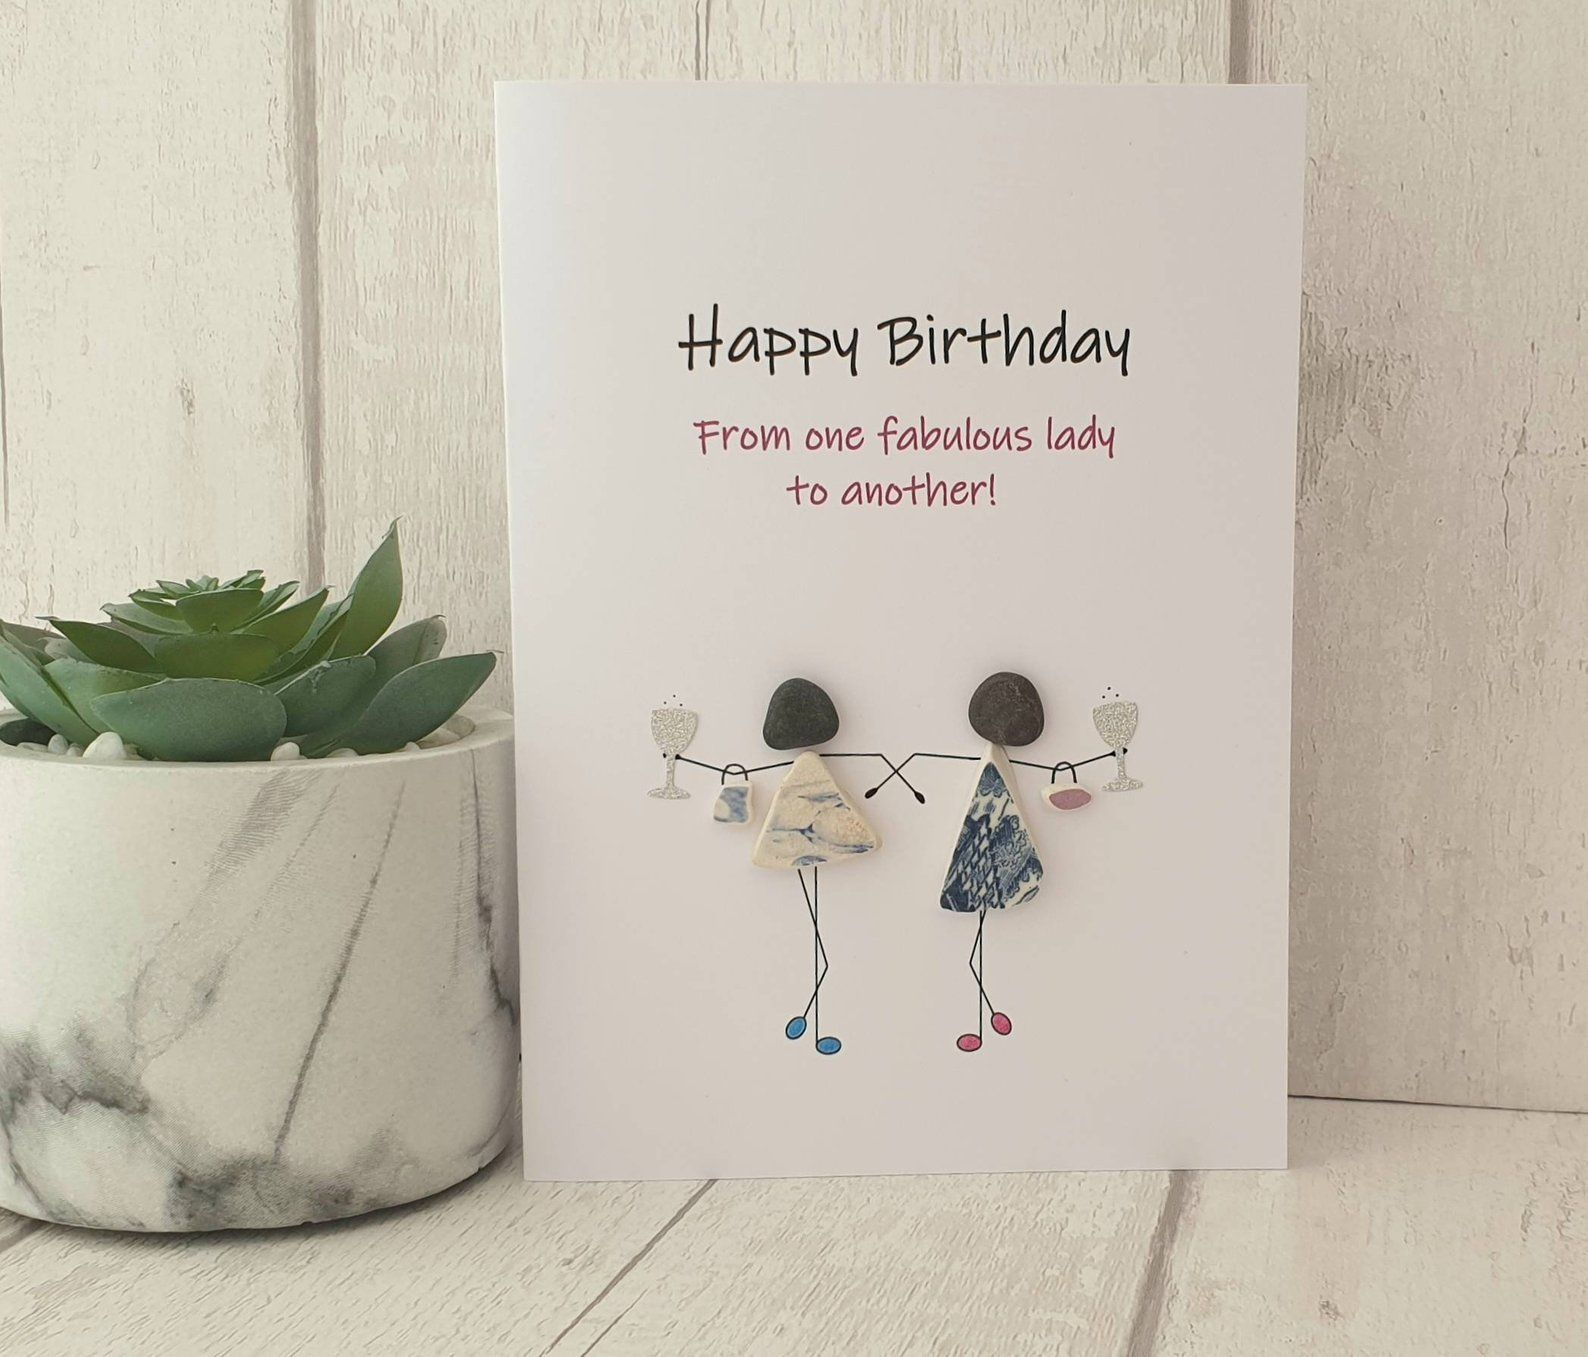 Best Friend Birthday Pebble Art Card Unique Handmade Card For Etsy Cool Birthday Cards Birthday Cards Handmade Birthday Cards